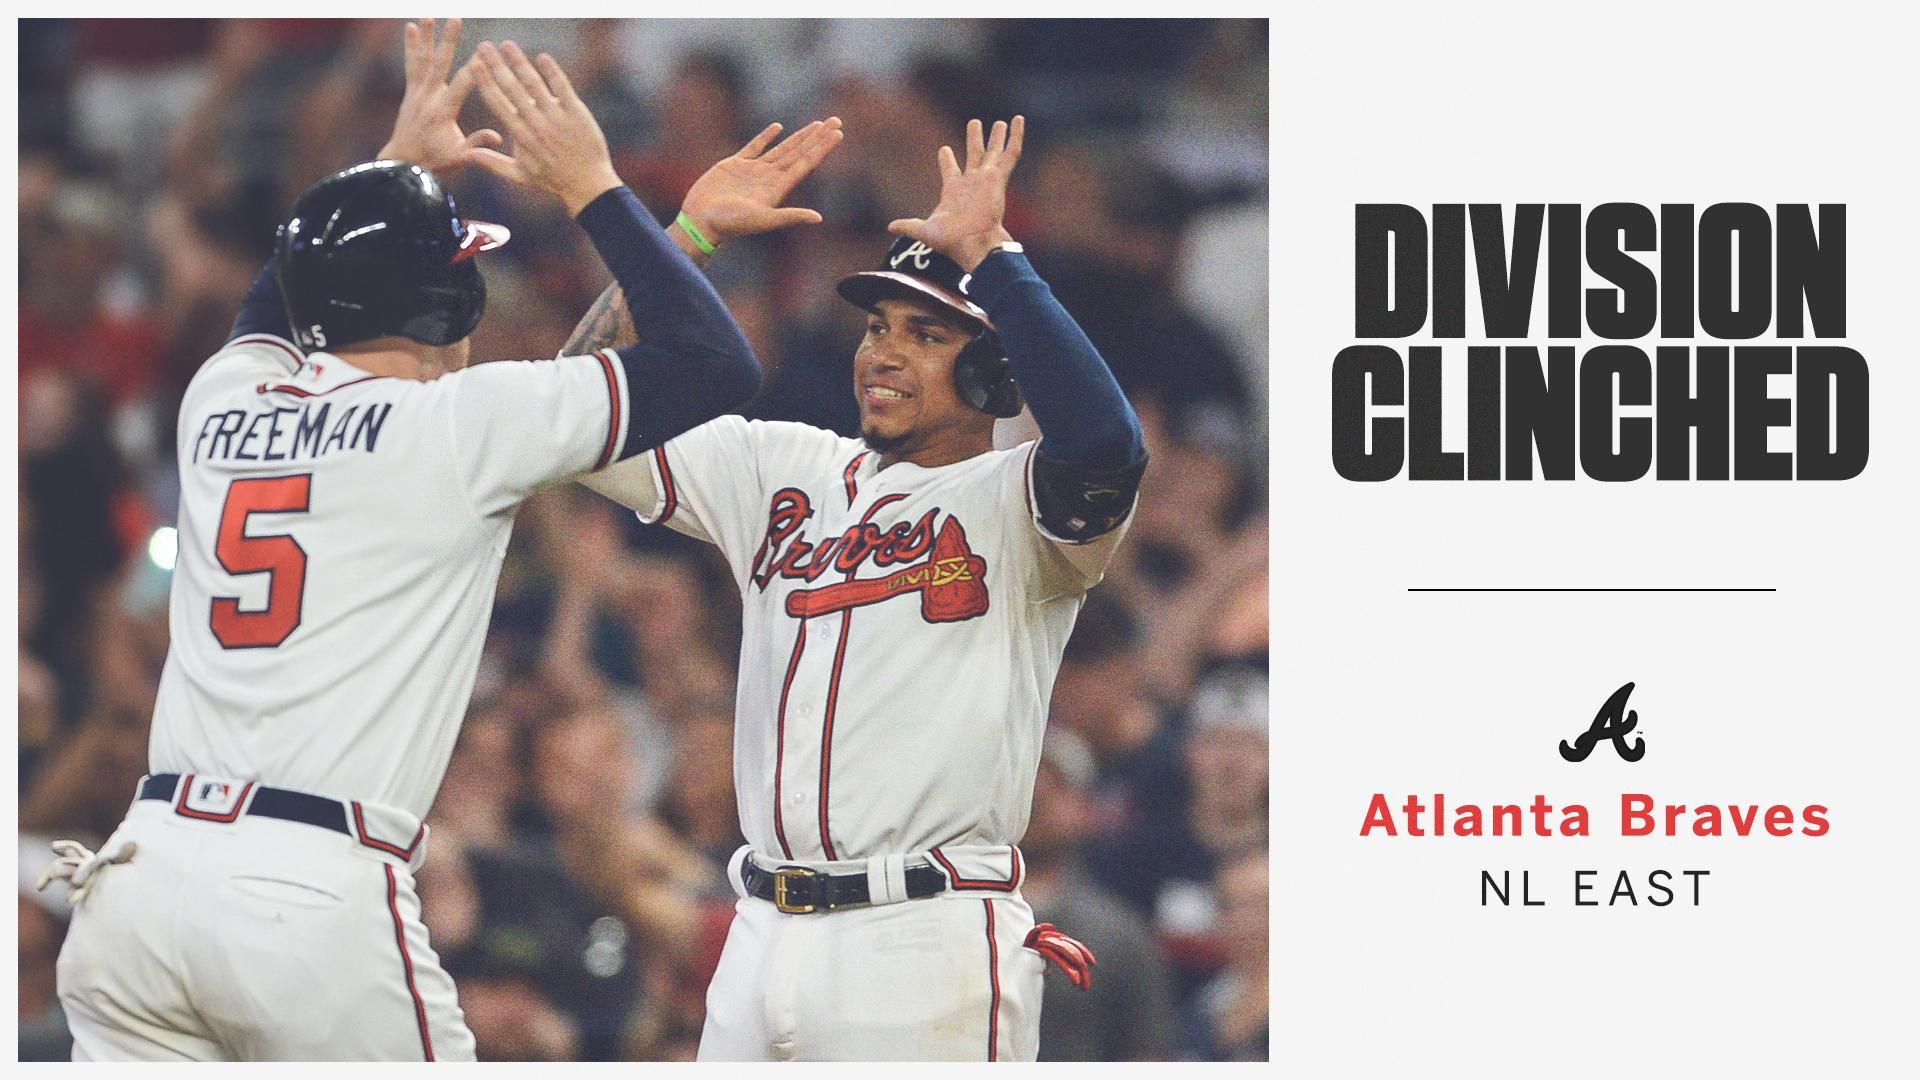 Back at it!  The @Braves clinch their first NL East title since 2013. https://t.co/uJvn5RorID